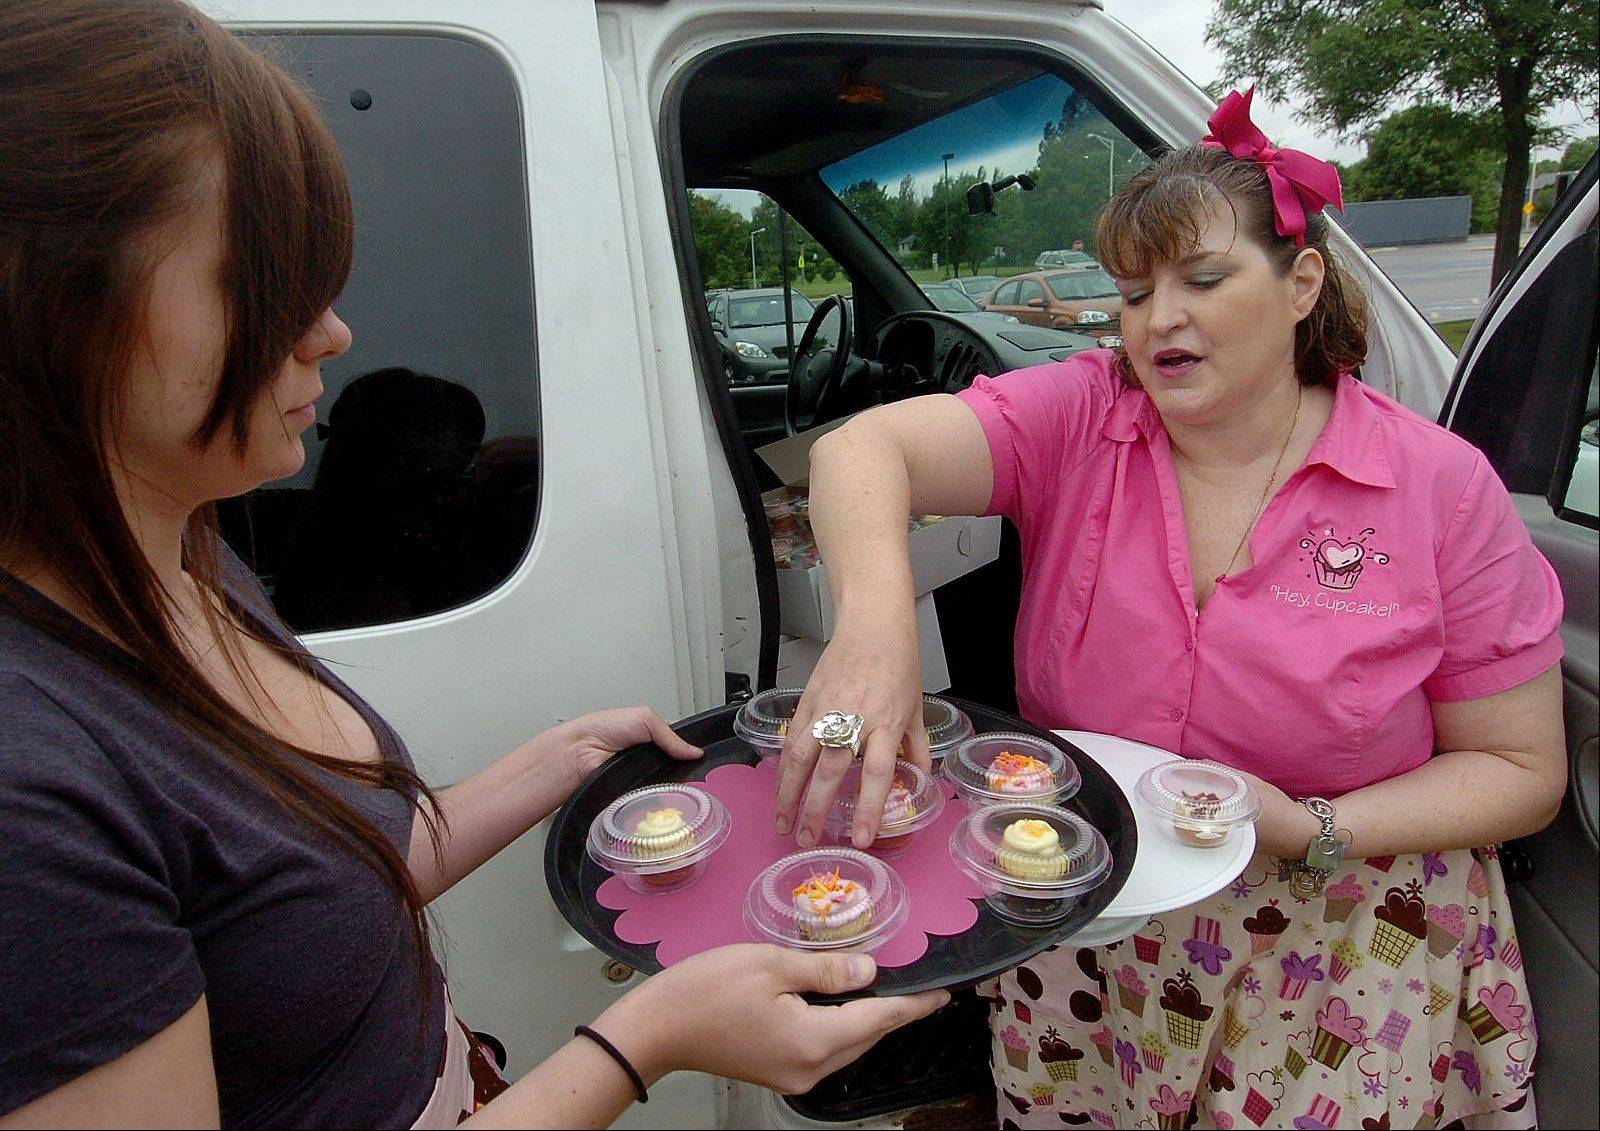 Angie DeFabis-Moeller, owner of the Schaumburg-based Cruisin' Cupcakes food truck, and her employee, Natalia Dabrowski, get free samples ready to hand out during a recent Schaumburg youth baseball game.